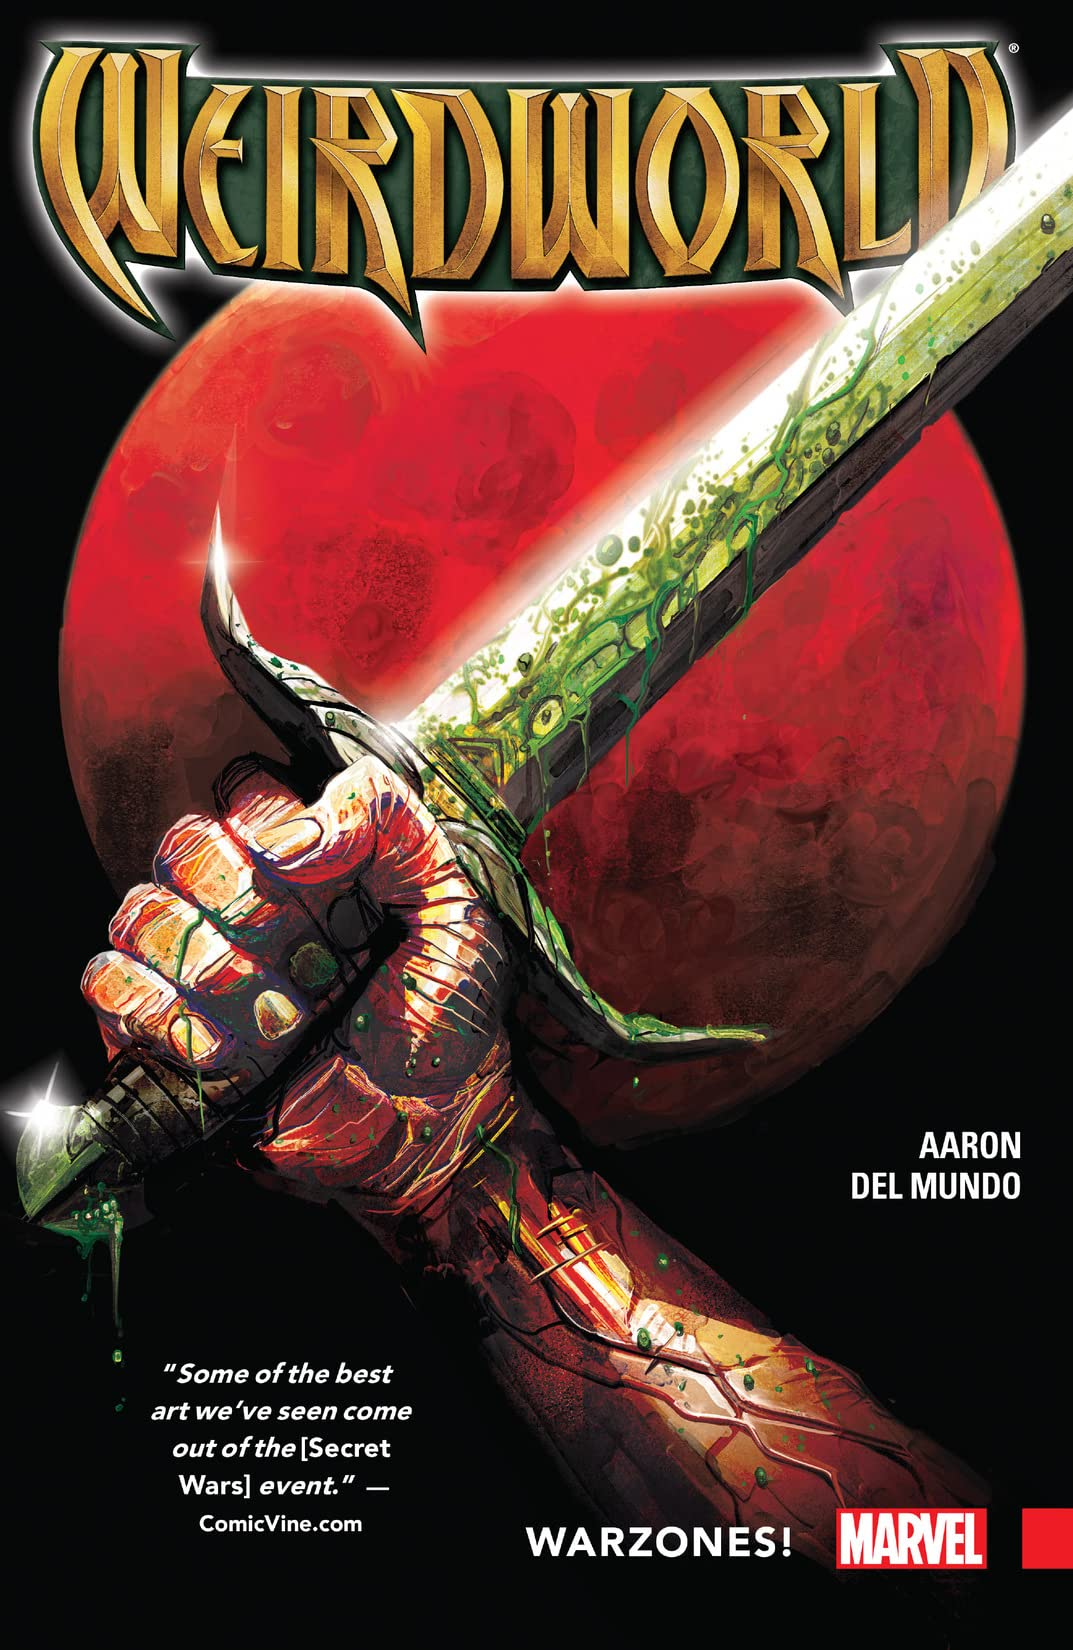 Weirdworld Vol. 0 : Warzones!